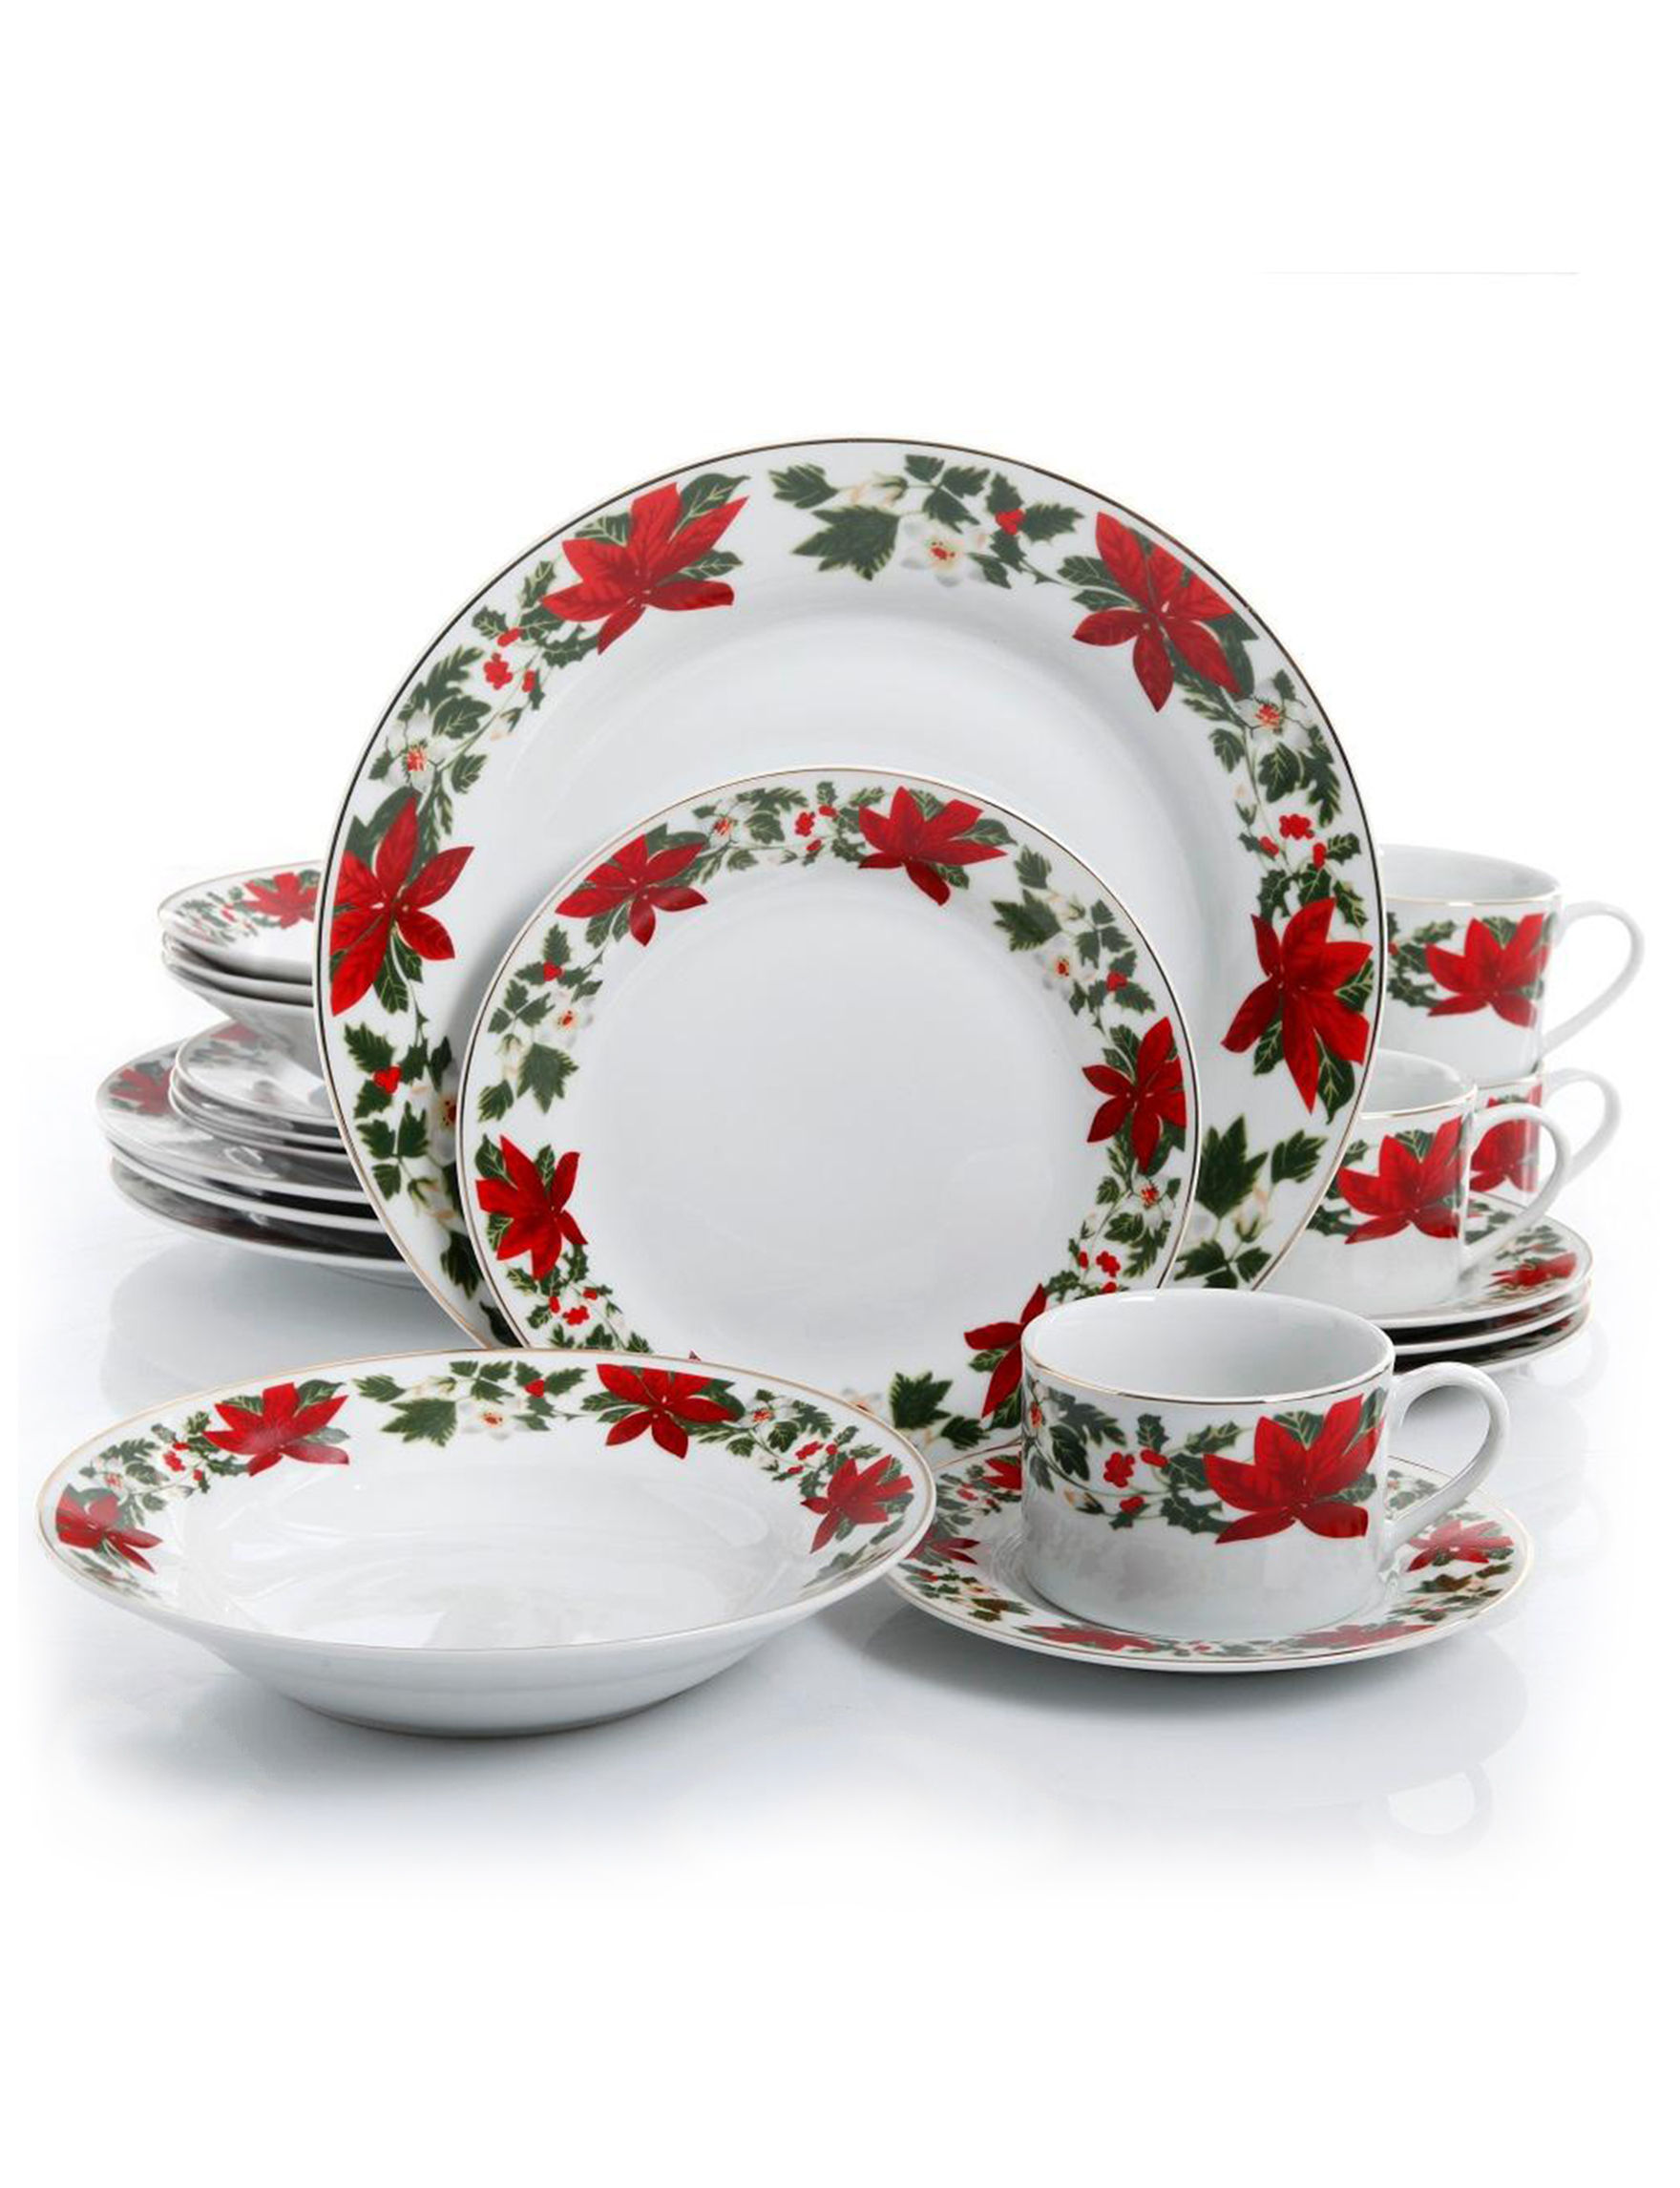 poinsettia holiday dinnerware set closeout stage stores - Cheap Christmas Dinnerware Sets